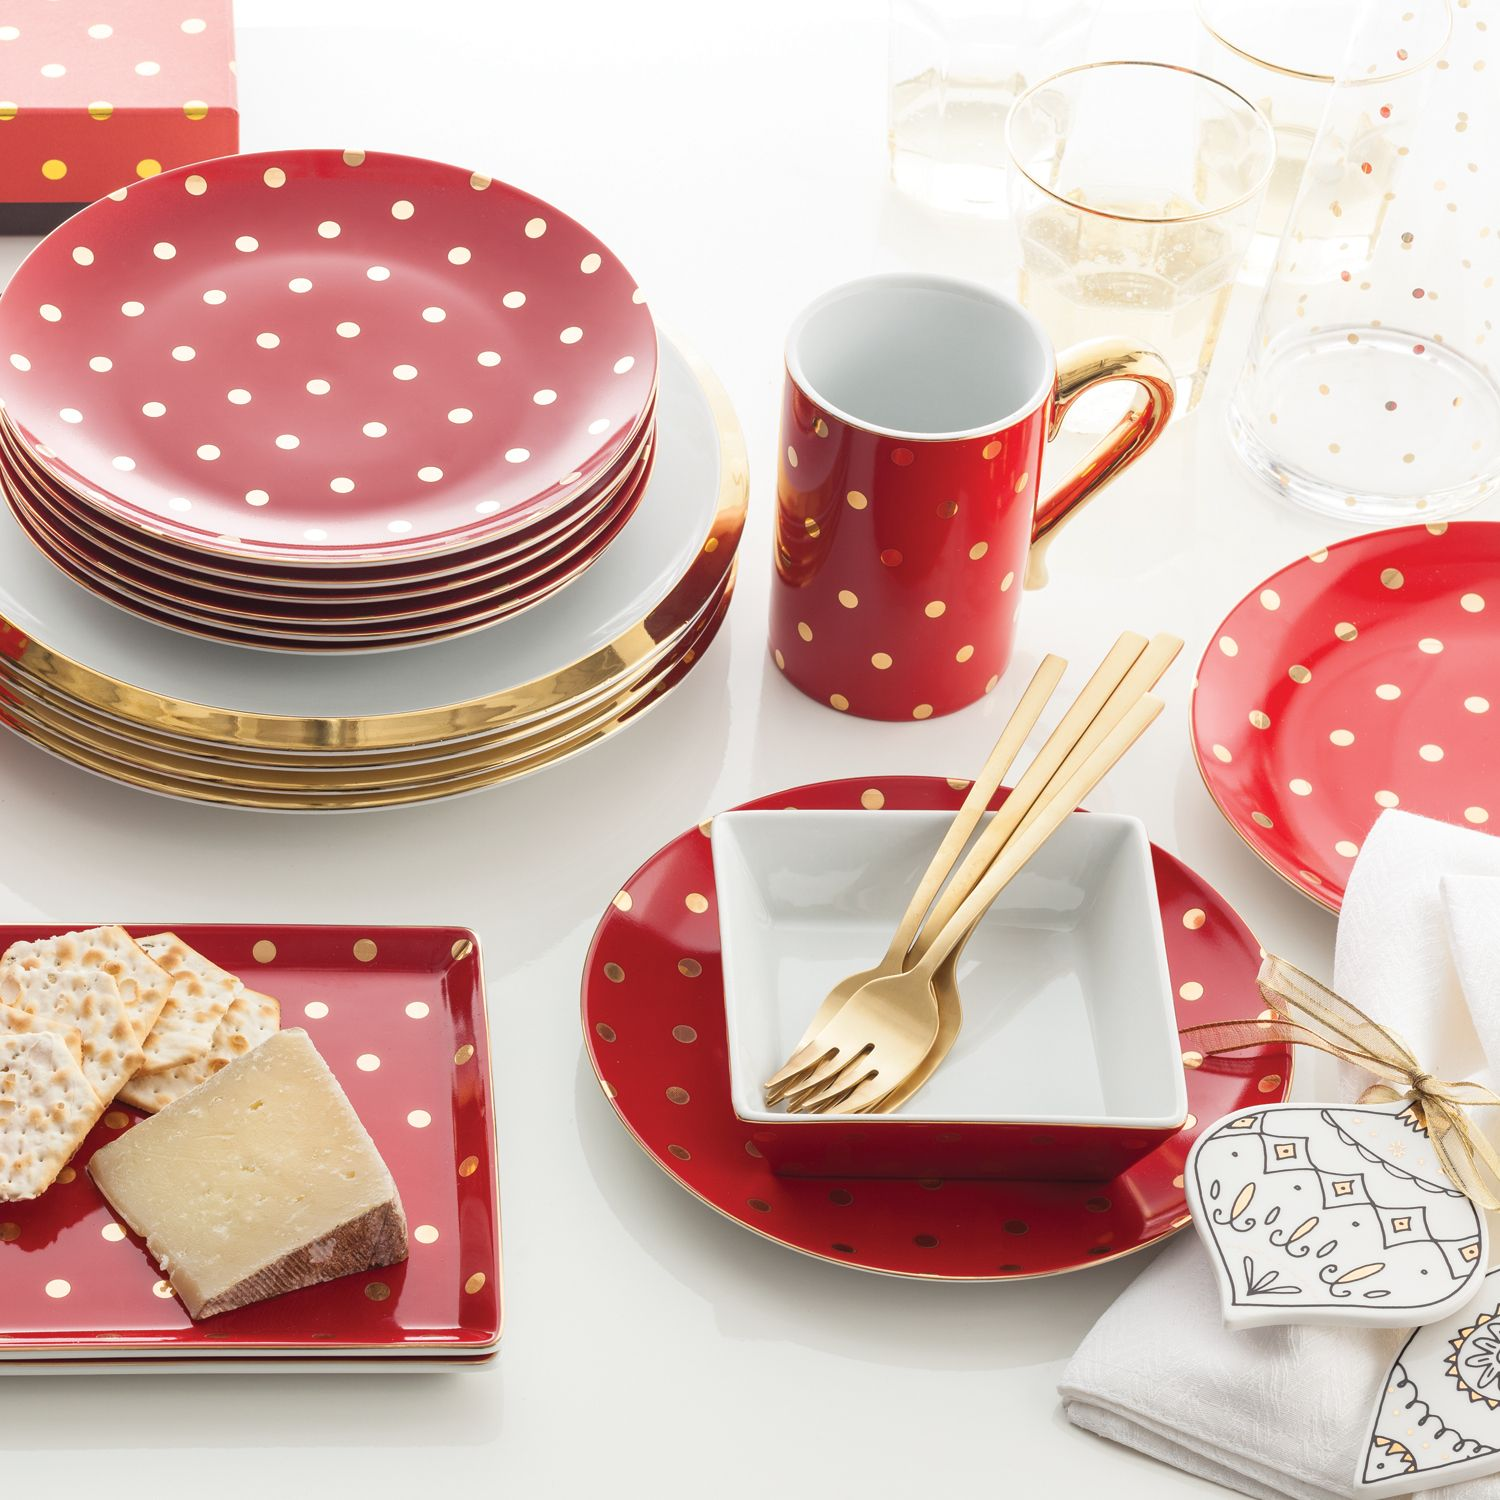 Rosanna Soiree Rouge Plate Set of 12 @LaylaGrayce & Rosanna Soiree Rouge Plate Set of 12 @LaylaGrayce | Kitchen ...